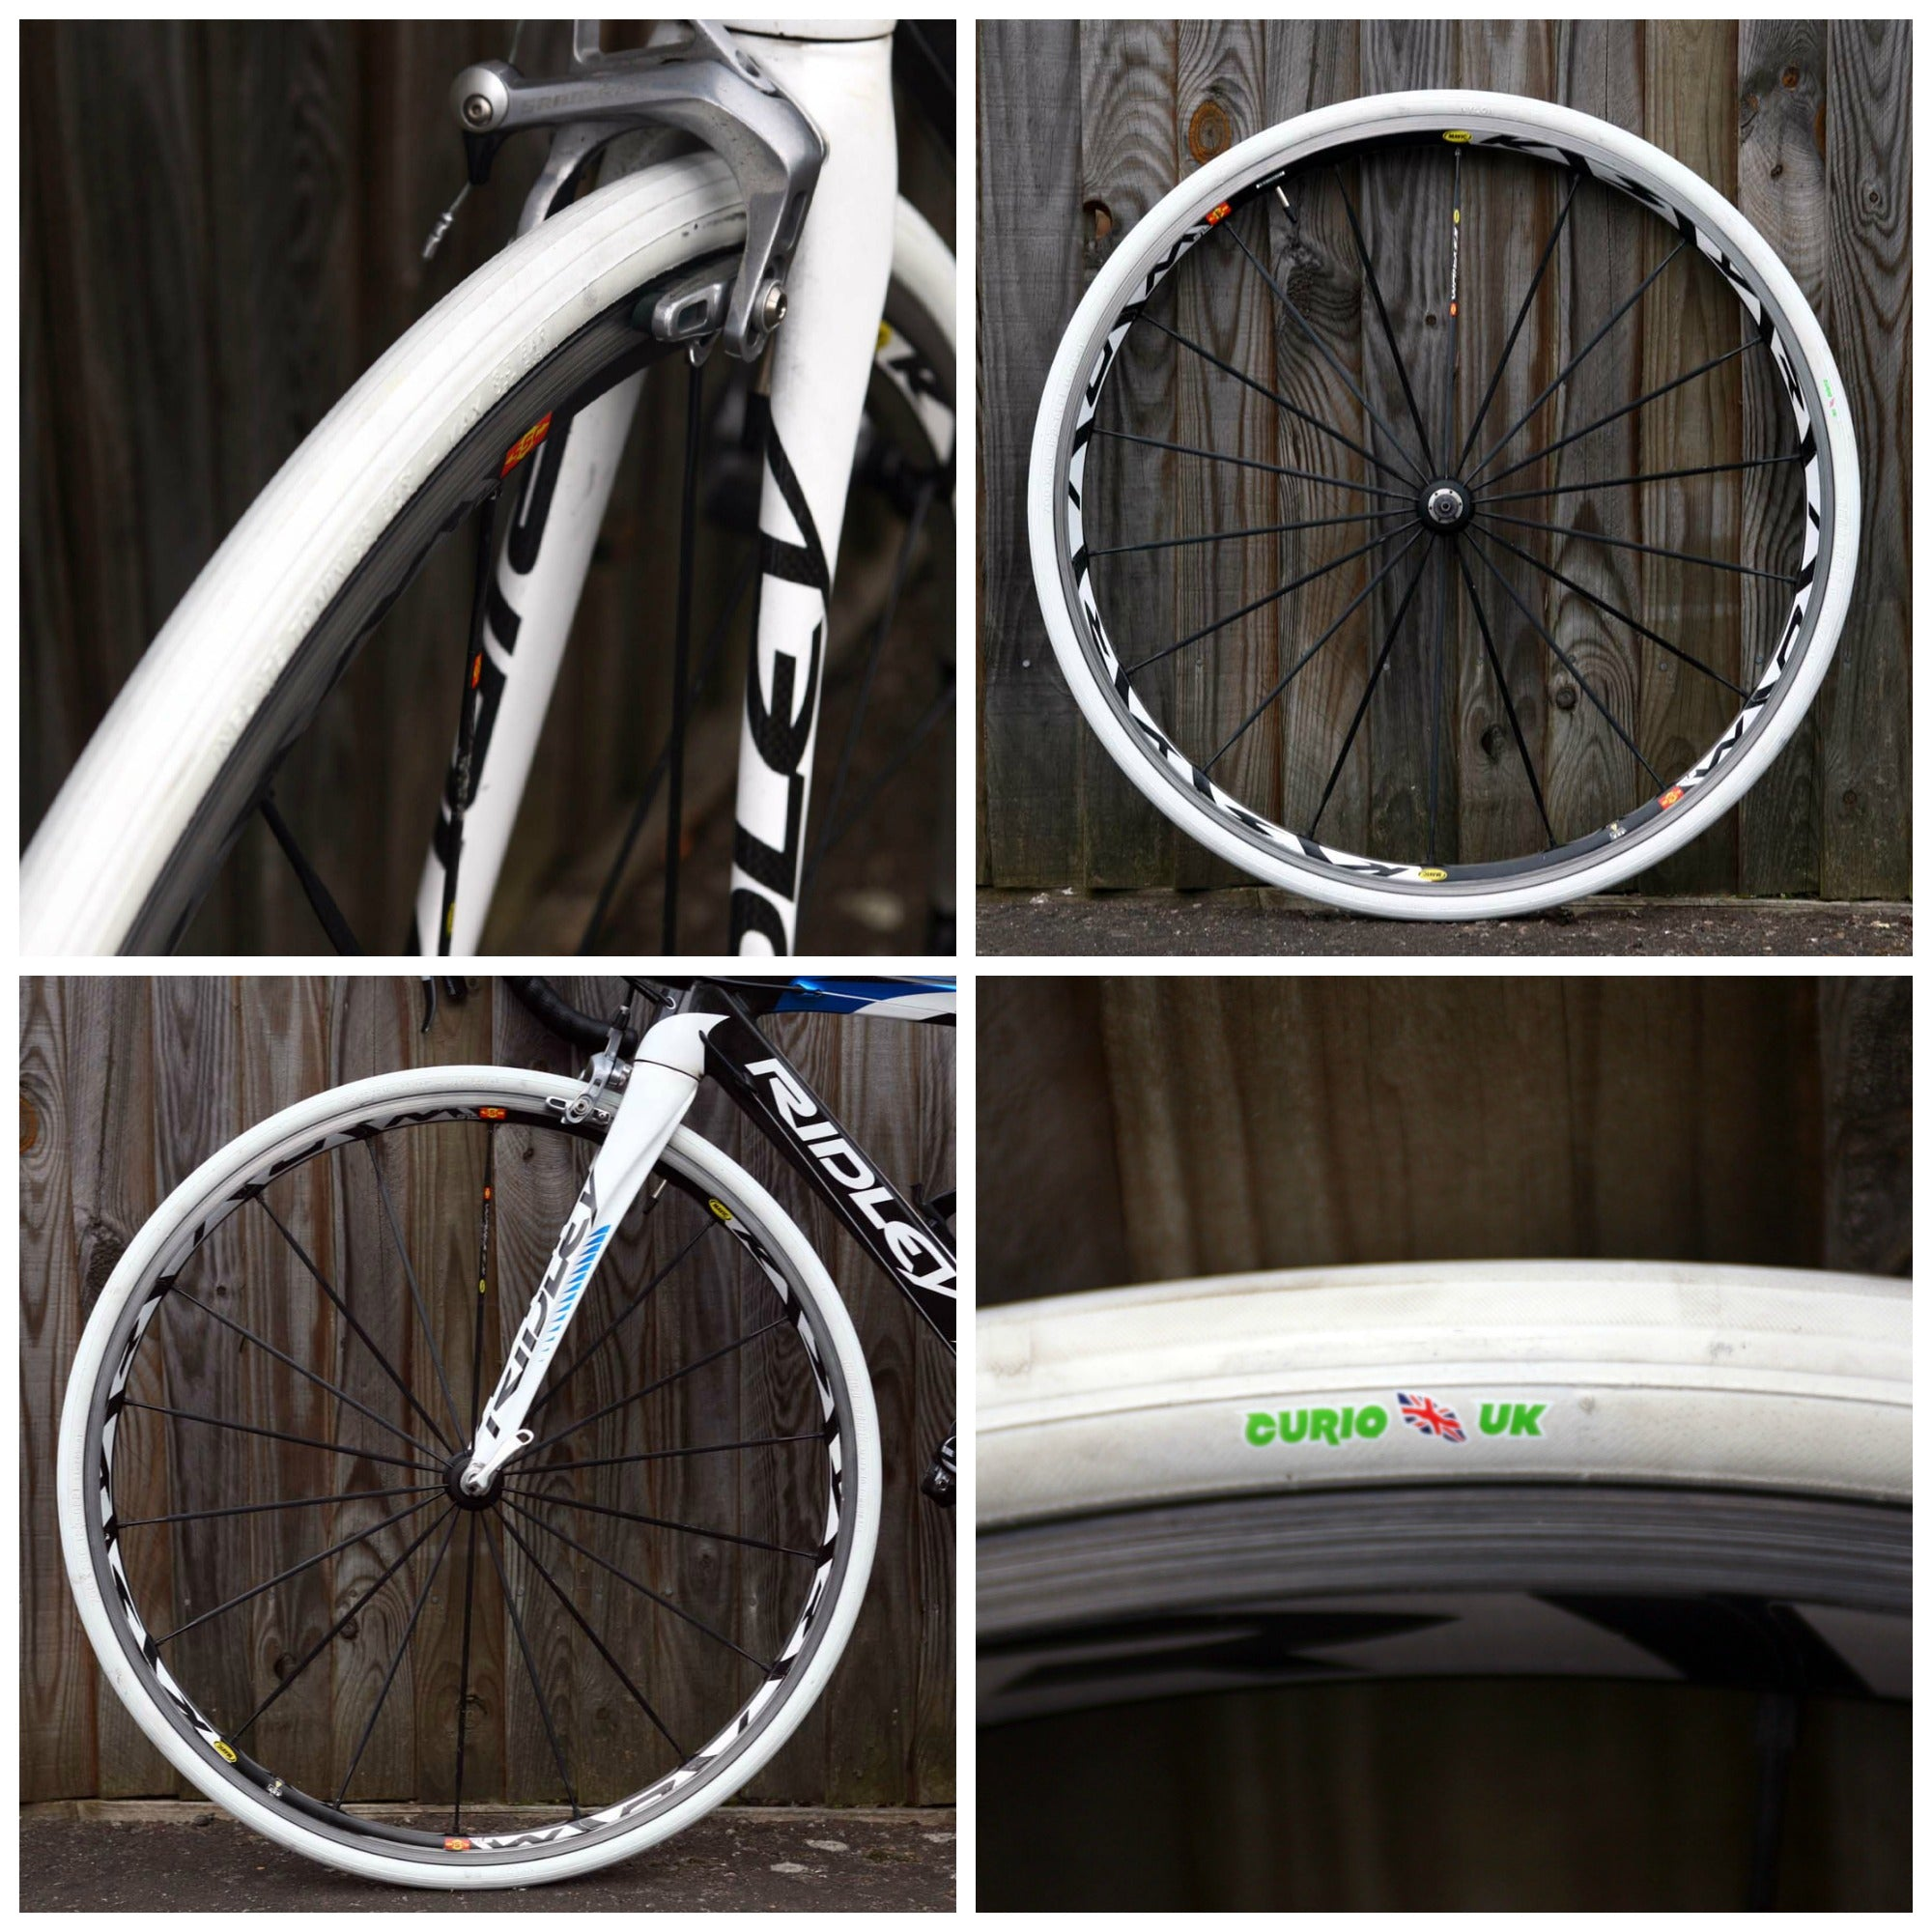 SA205 ALL WHITE 700 X 23 CLASSIC ROAD TYRE - With Aramid Puncture Protection